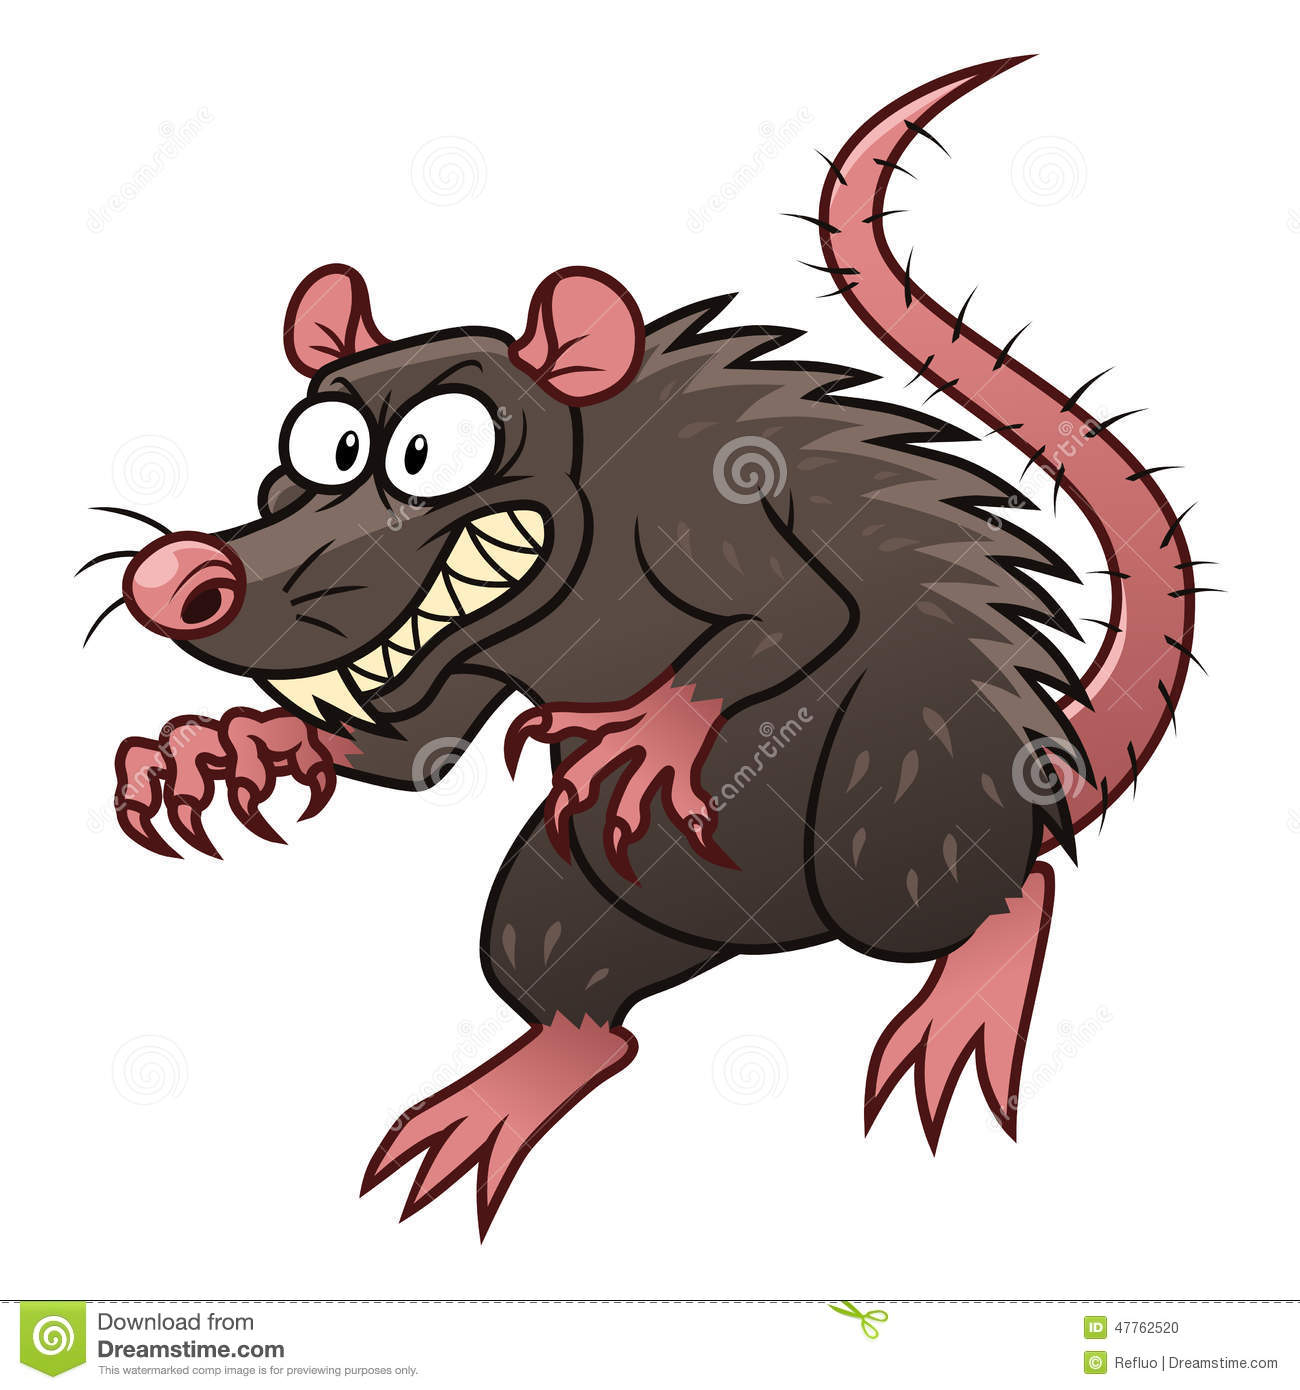 https://i2.wp.com/thumbs.dreamstime.com/z/evil-rat-cartoon-malicious-white-background-47762520.jpg